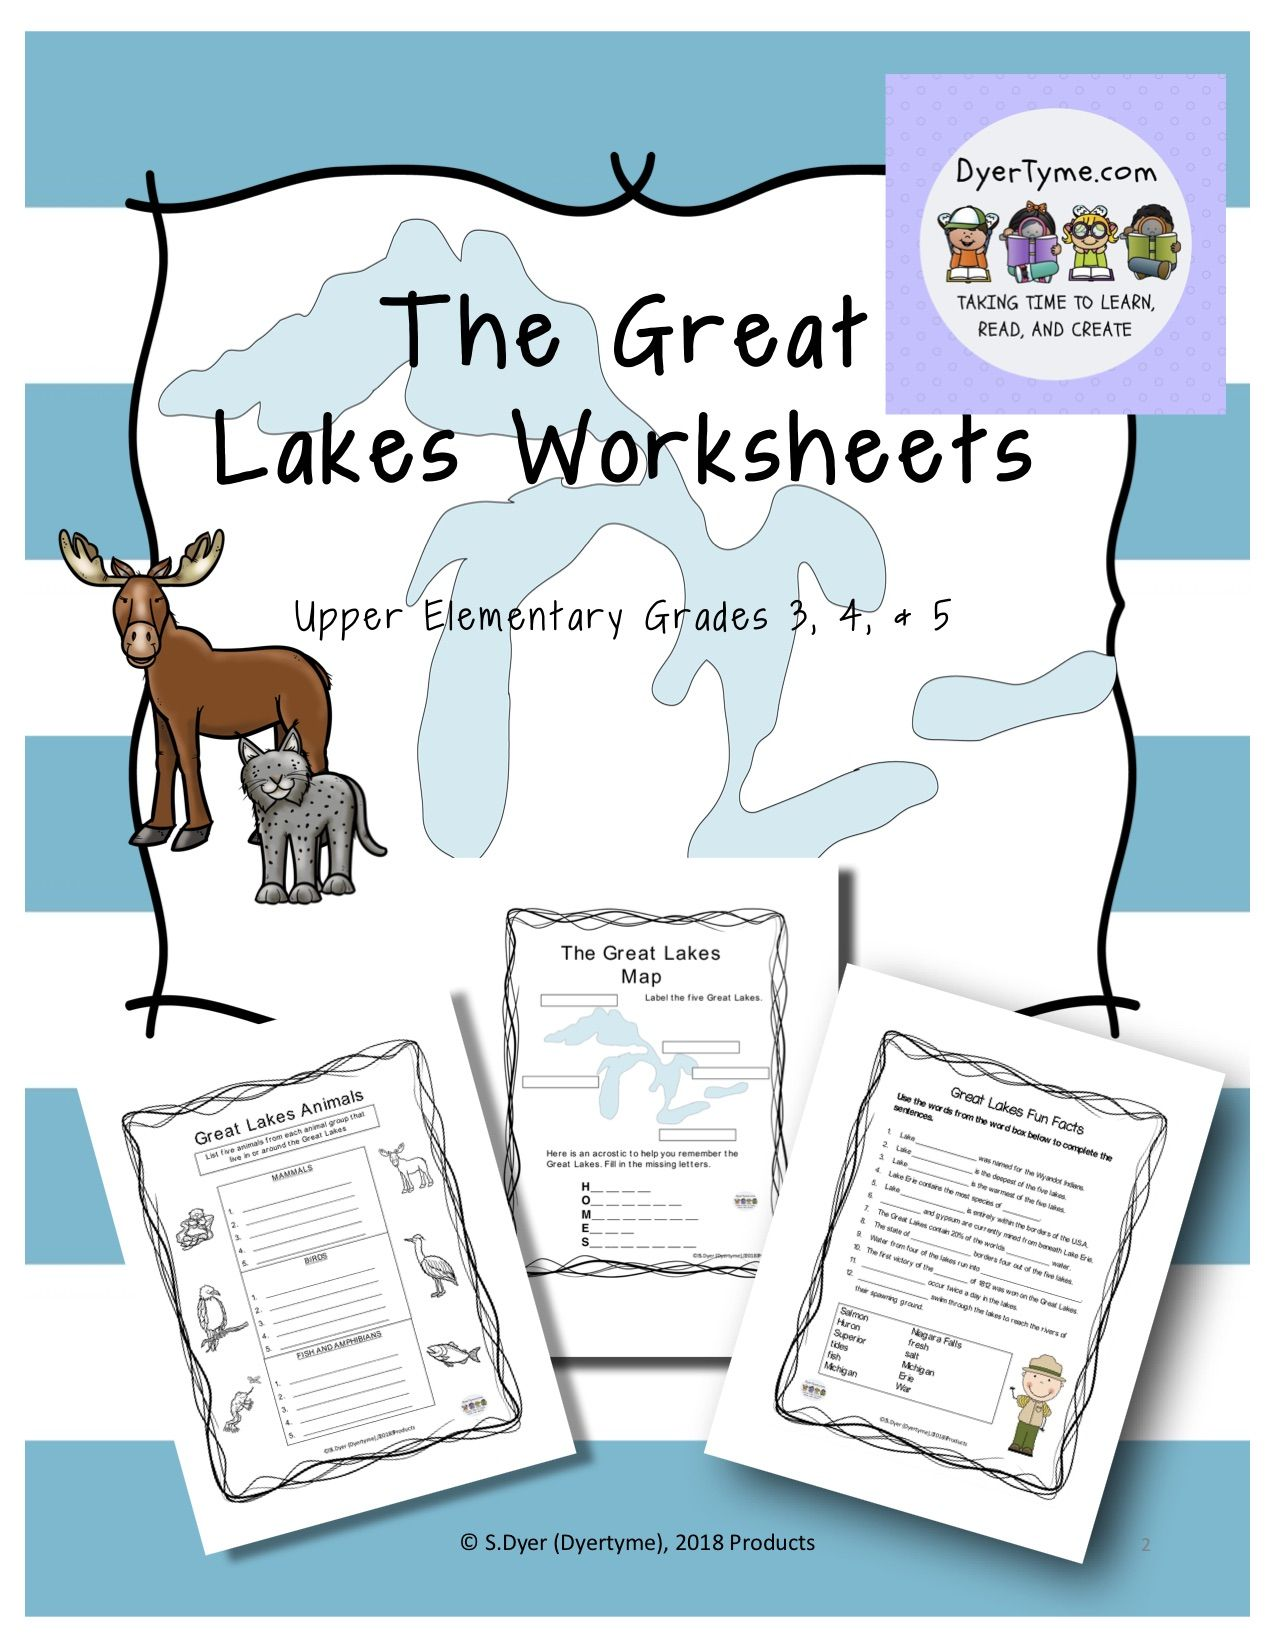 Three Great Lakes Worksheets That Can Be Added To Any